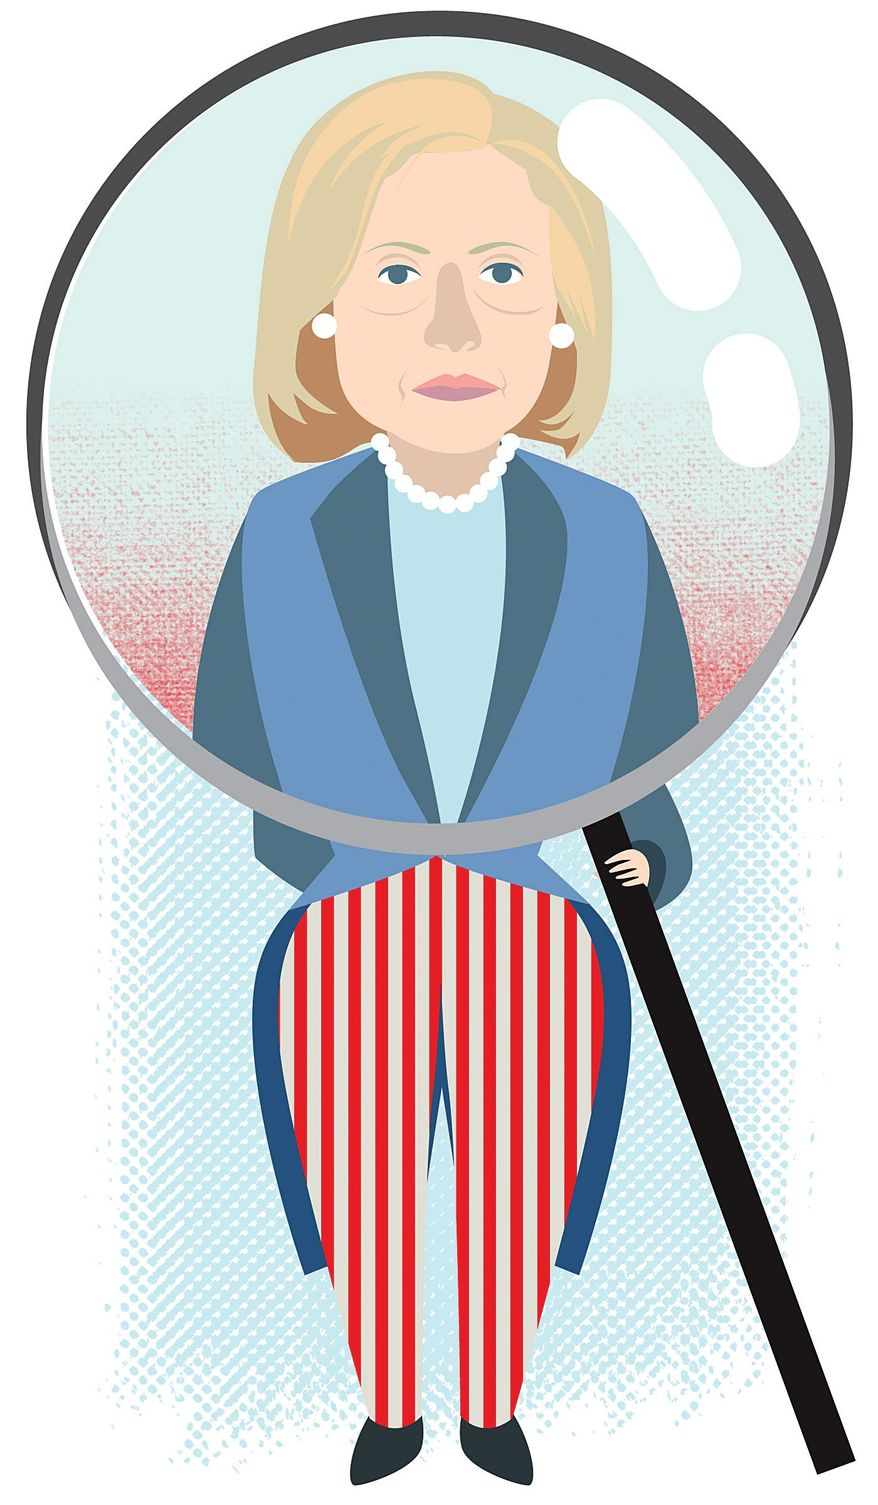 Illustration on investigating Hillary's foreign policy record by Linas Garsys/The Washington Times